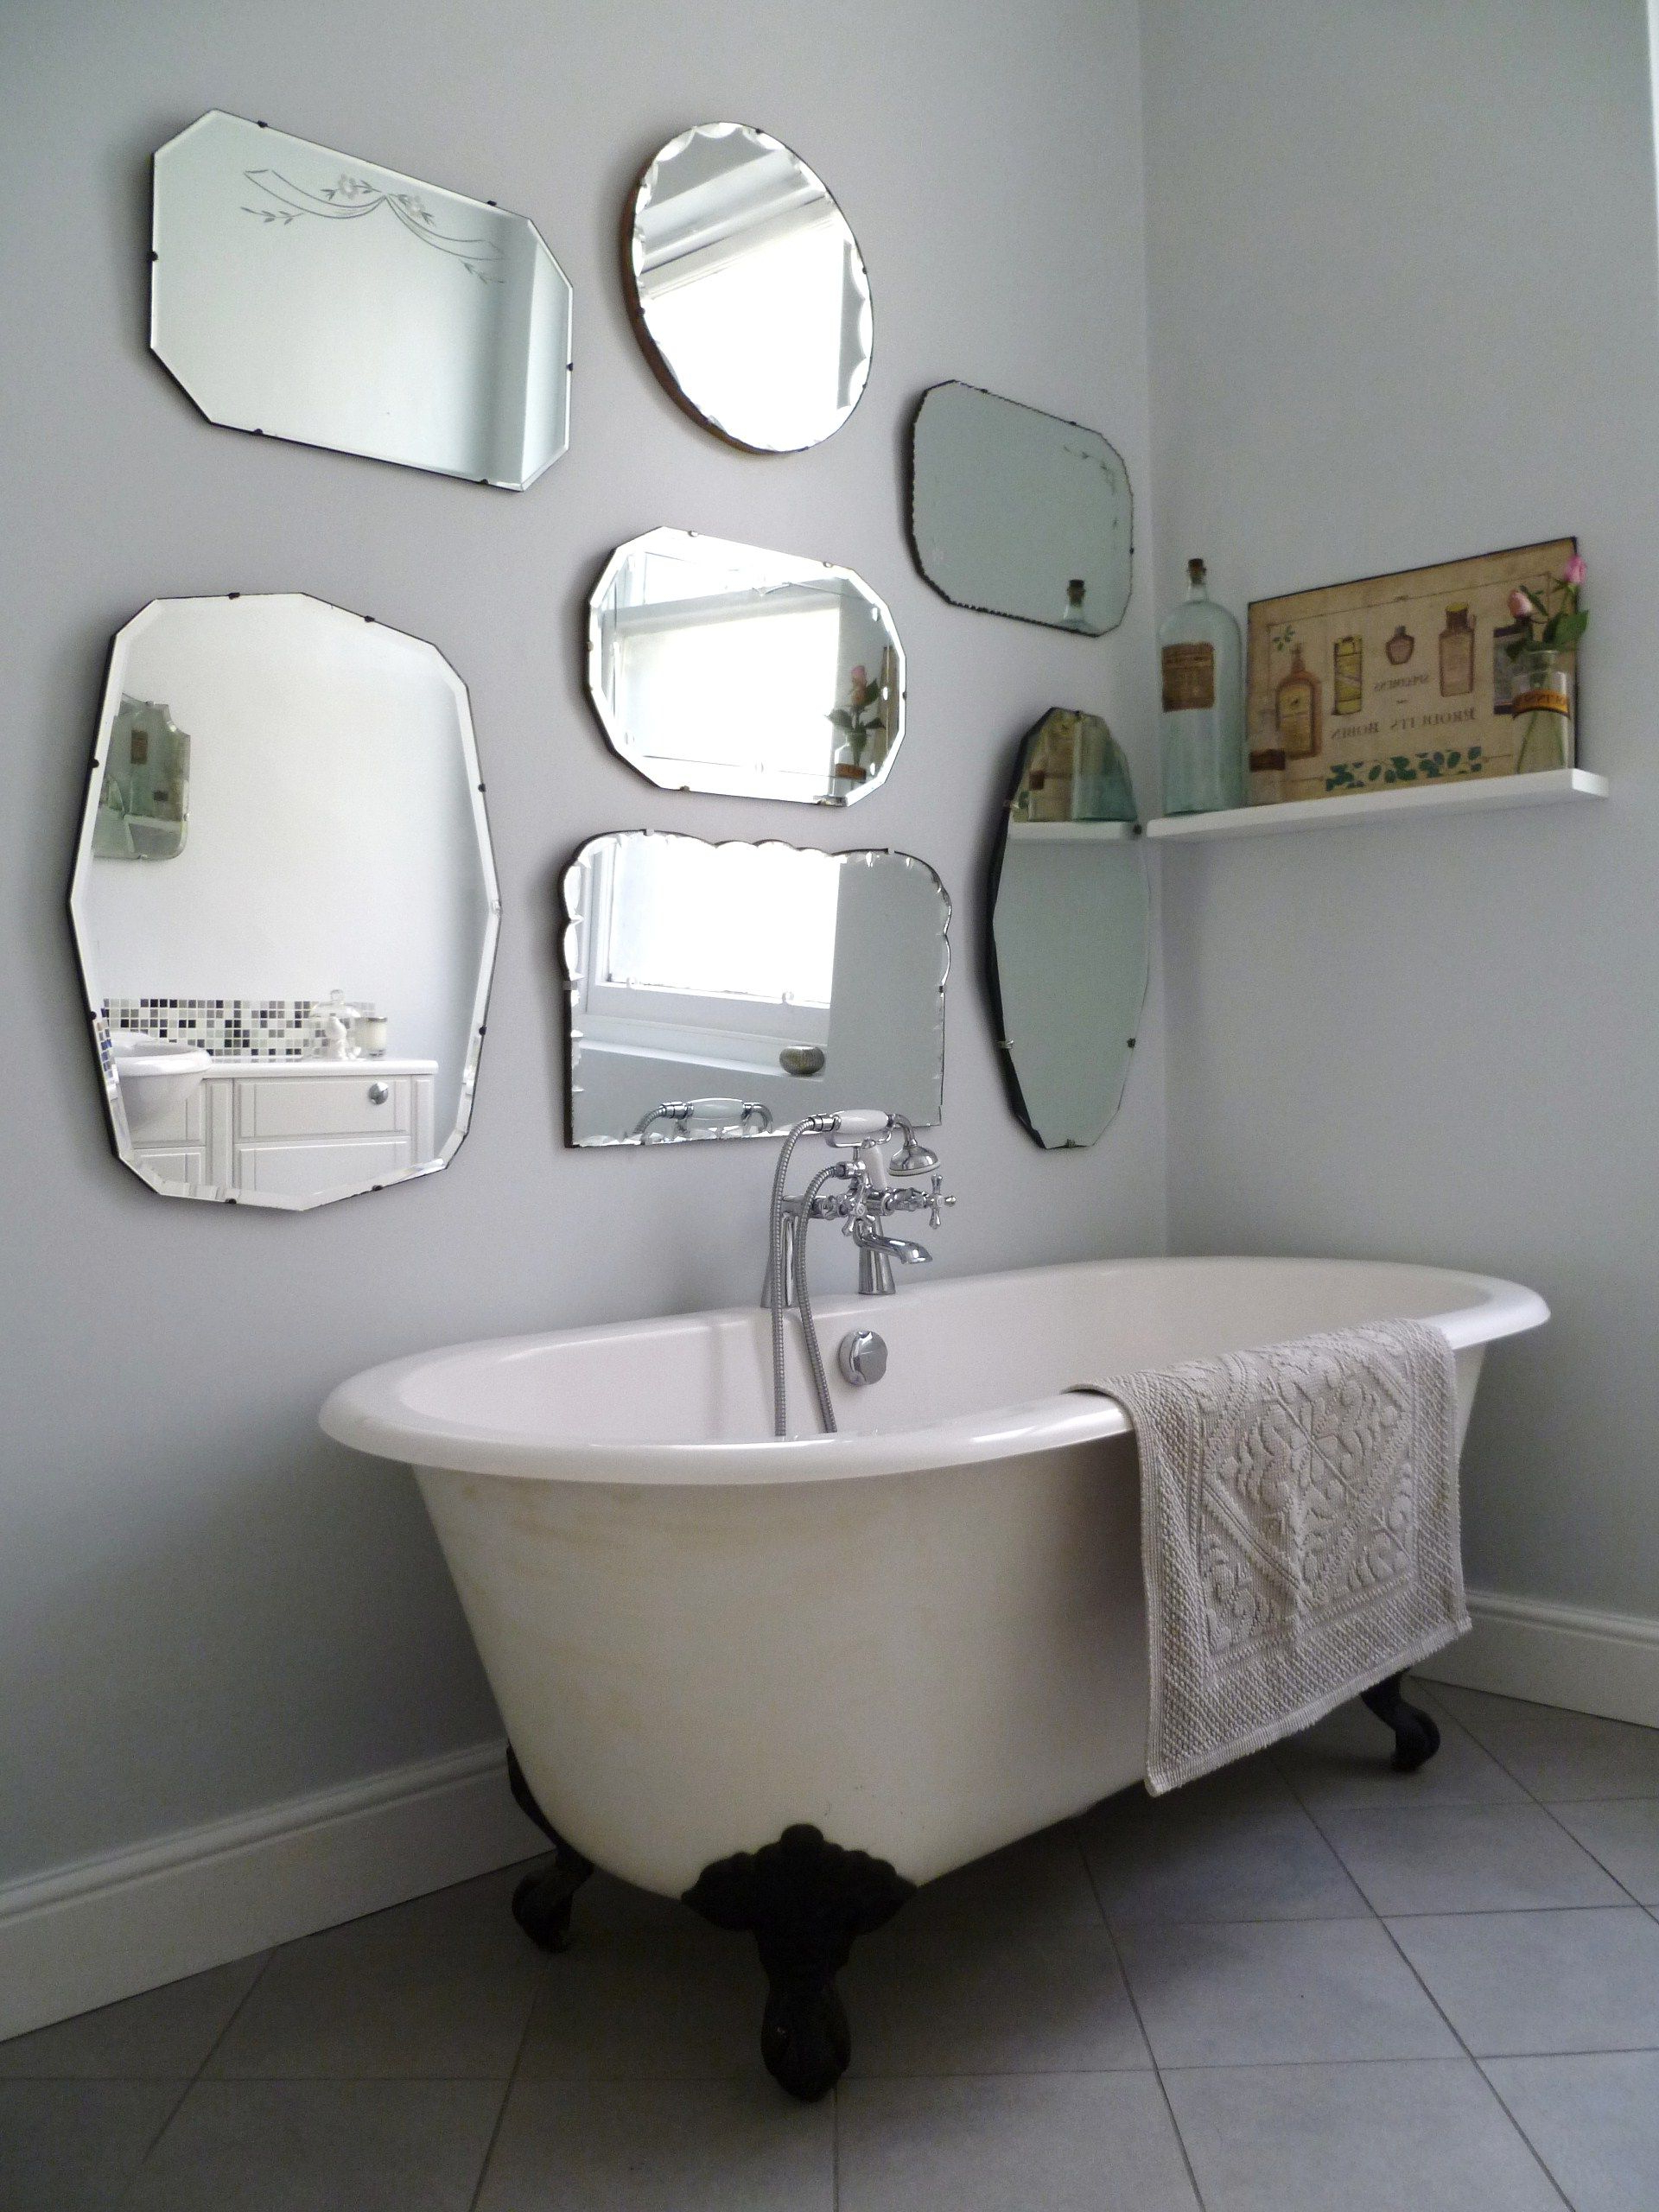 Current Hanging Wall Mirrors For Bathroom Inside How To Hang A Display Of Vintage Mirrors (Gallery 12 of 20)